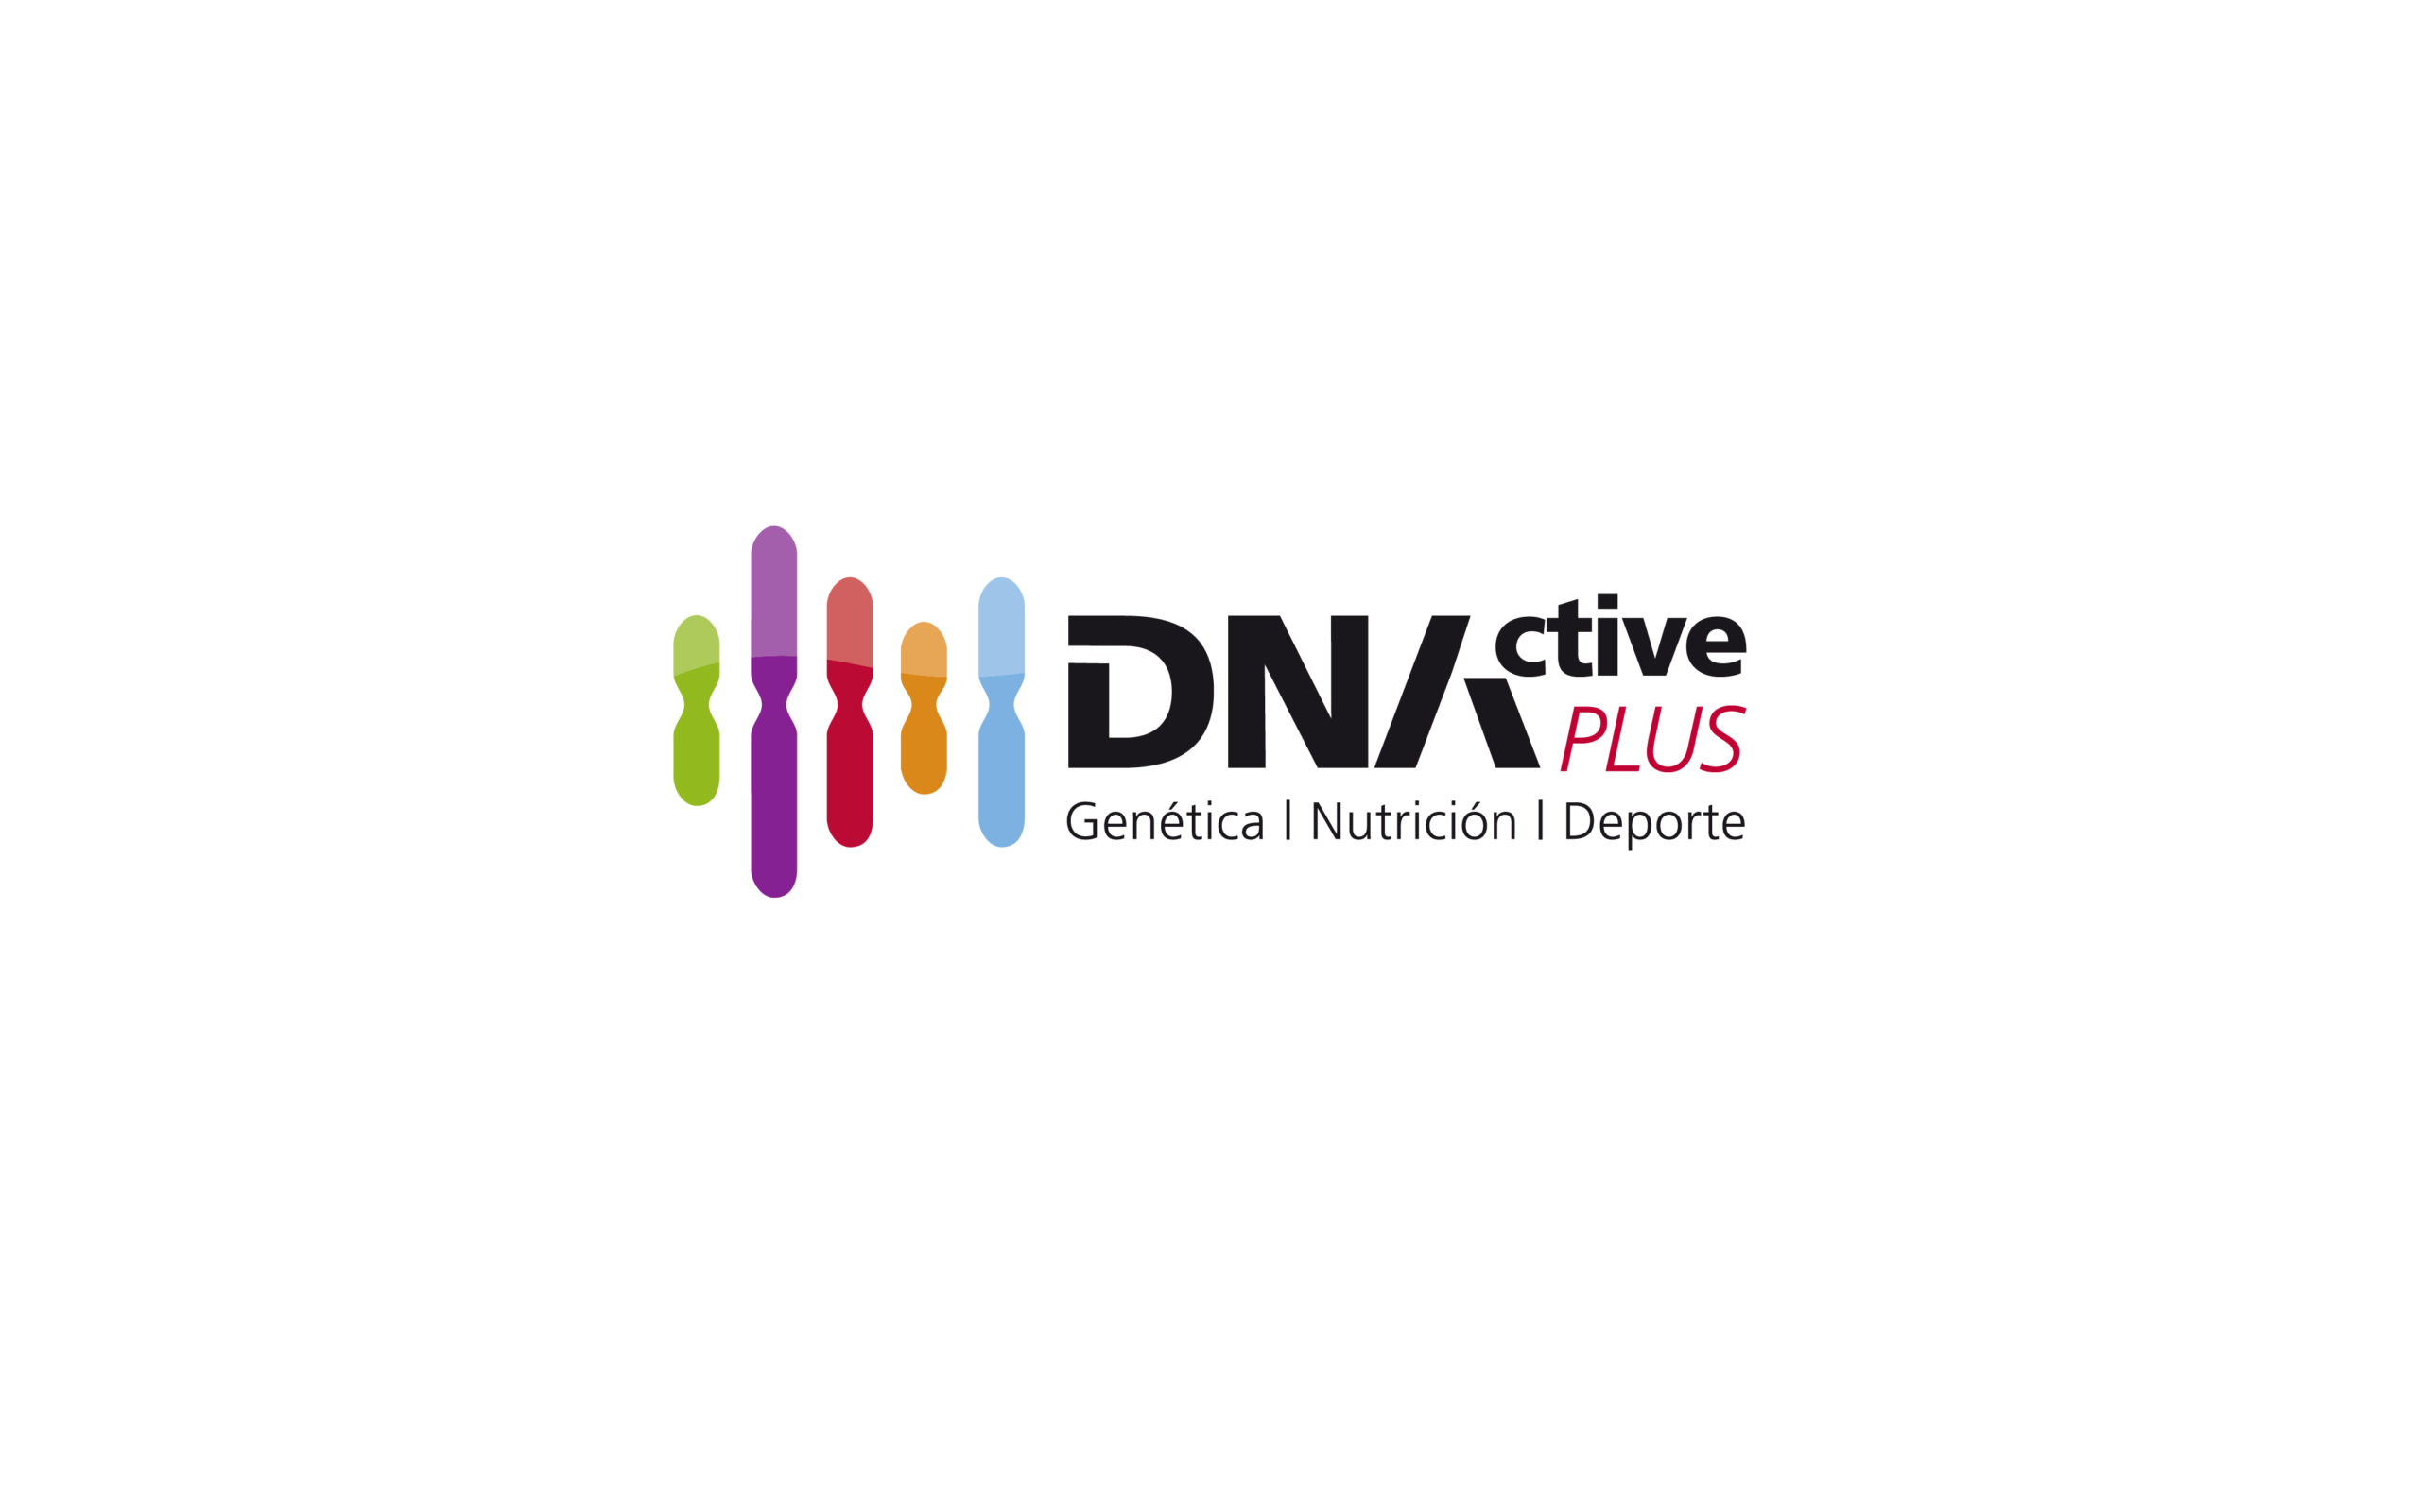 identidad-corporativa-branding-dn-active-plus